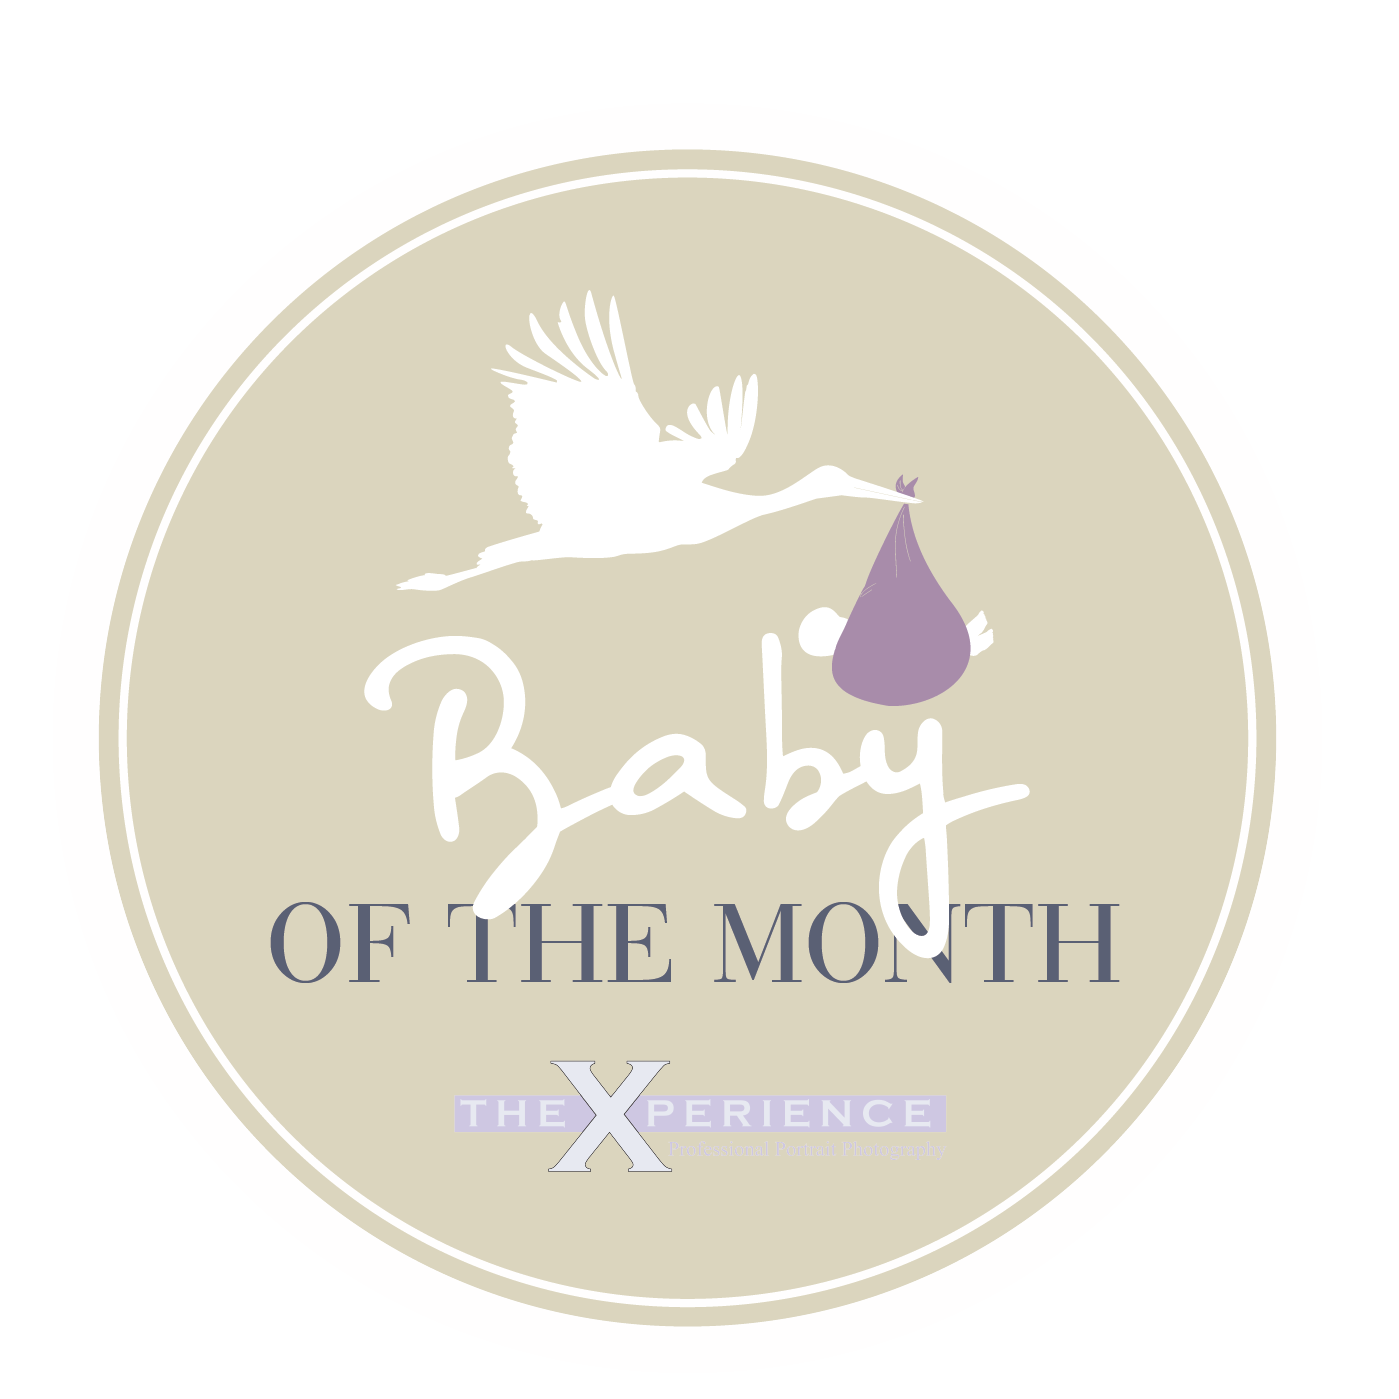 Baby of the month cirlce logo-01.png